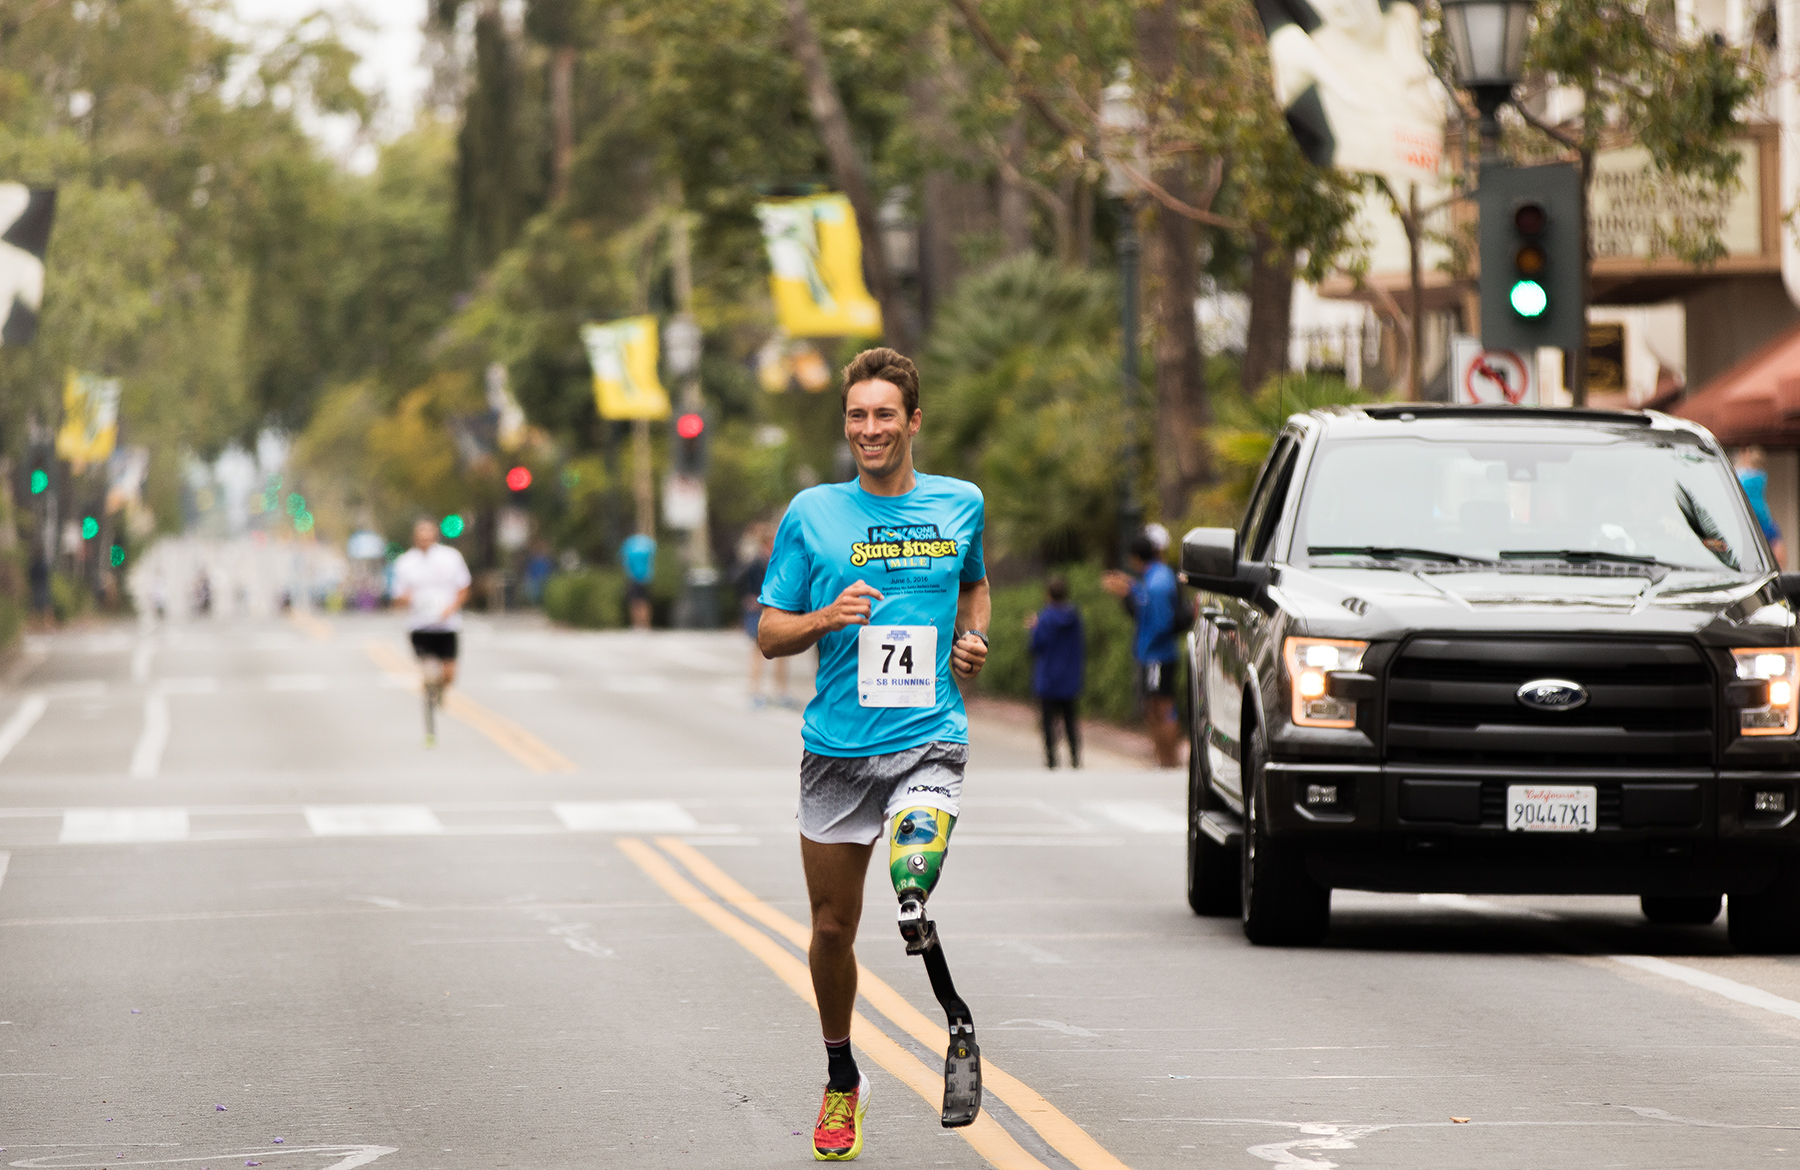 Andre Barbieri, 35, of Santa Barbara, finished second in the Amputee Athletes men's division with a time of 6:33.